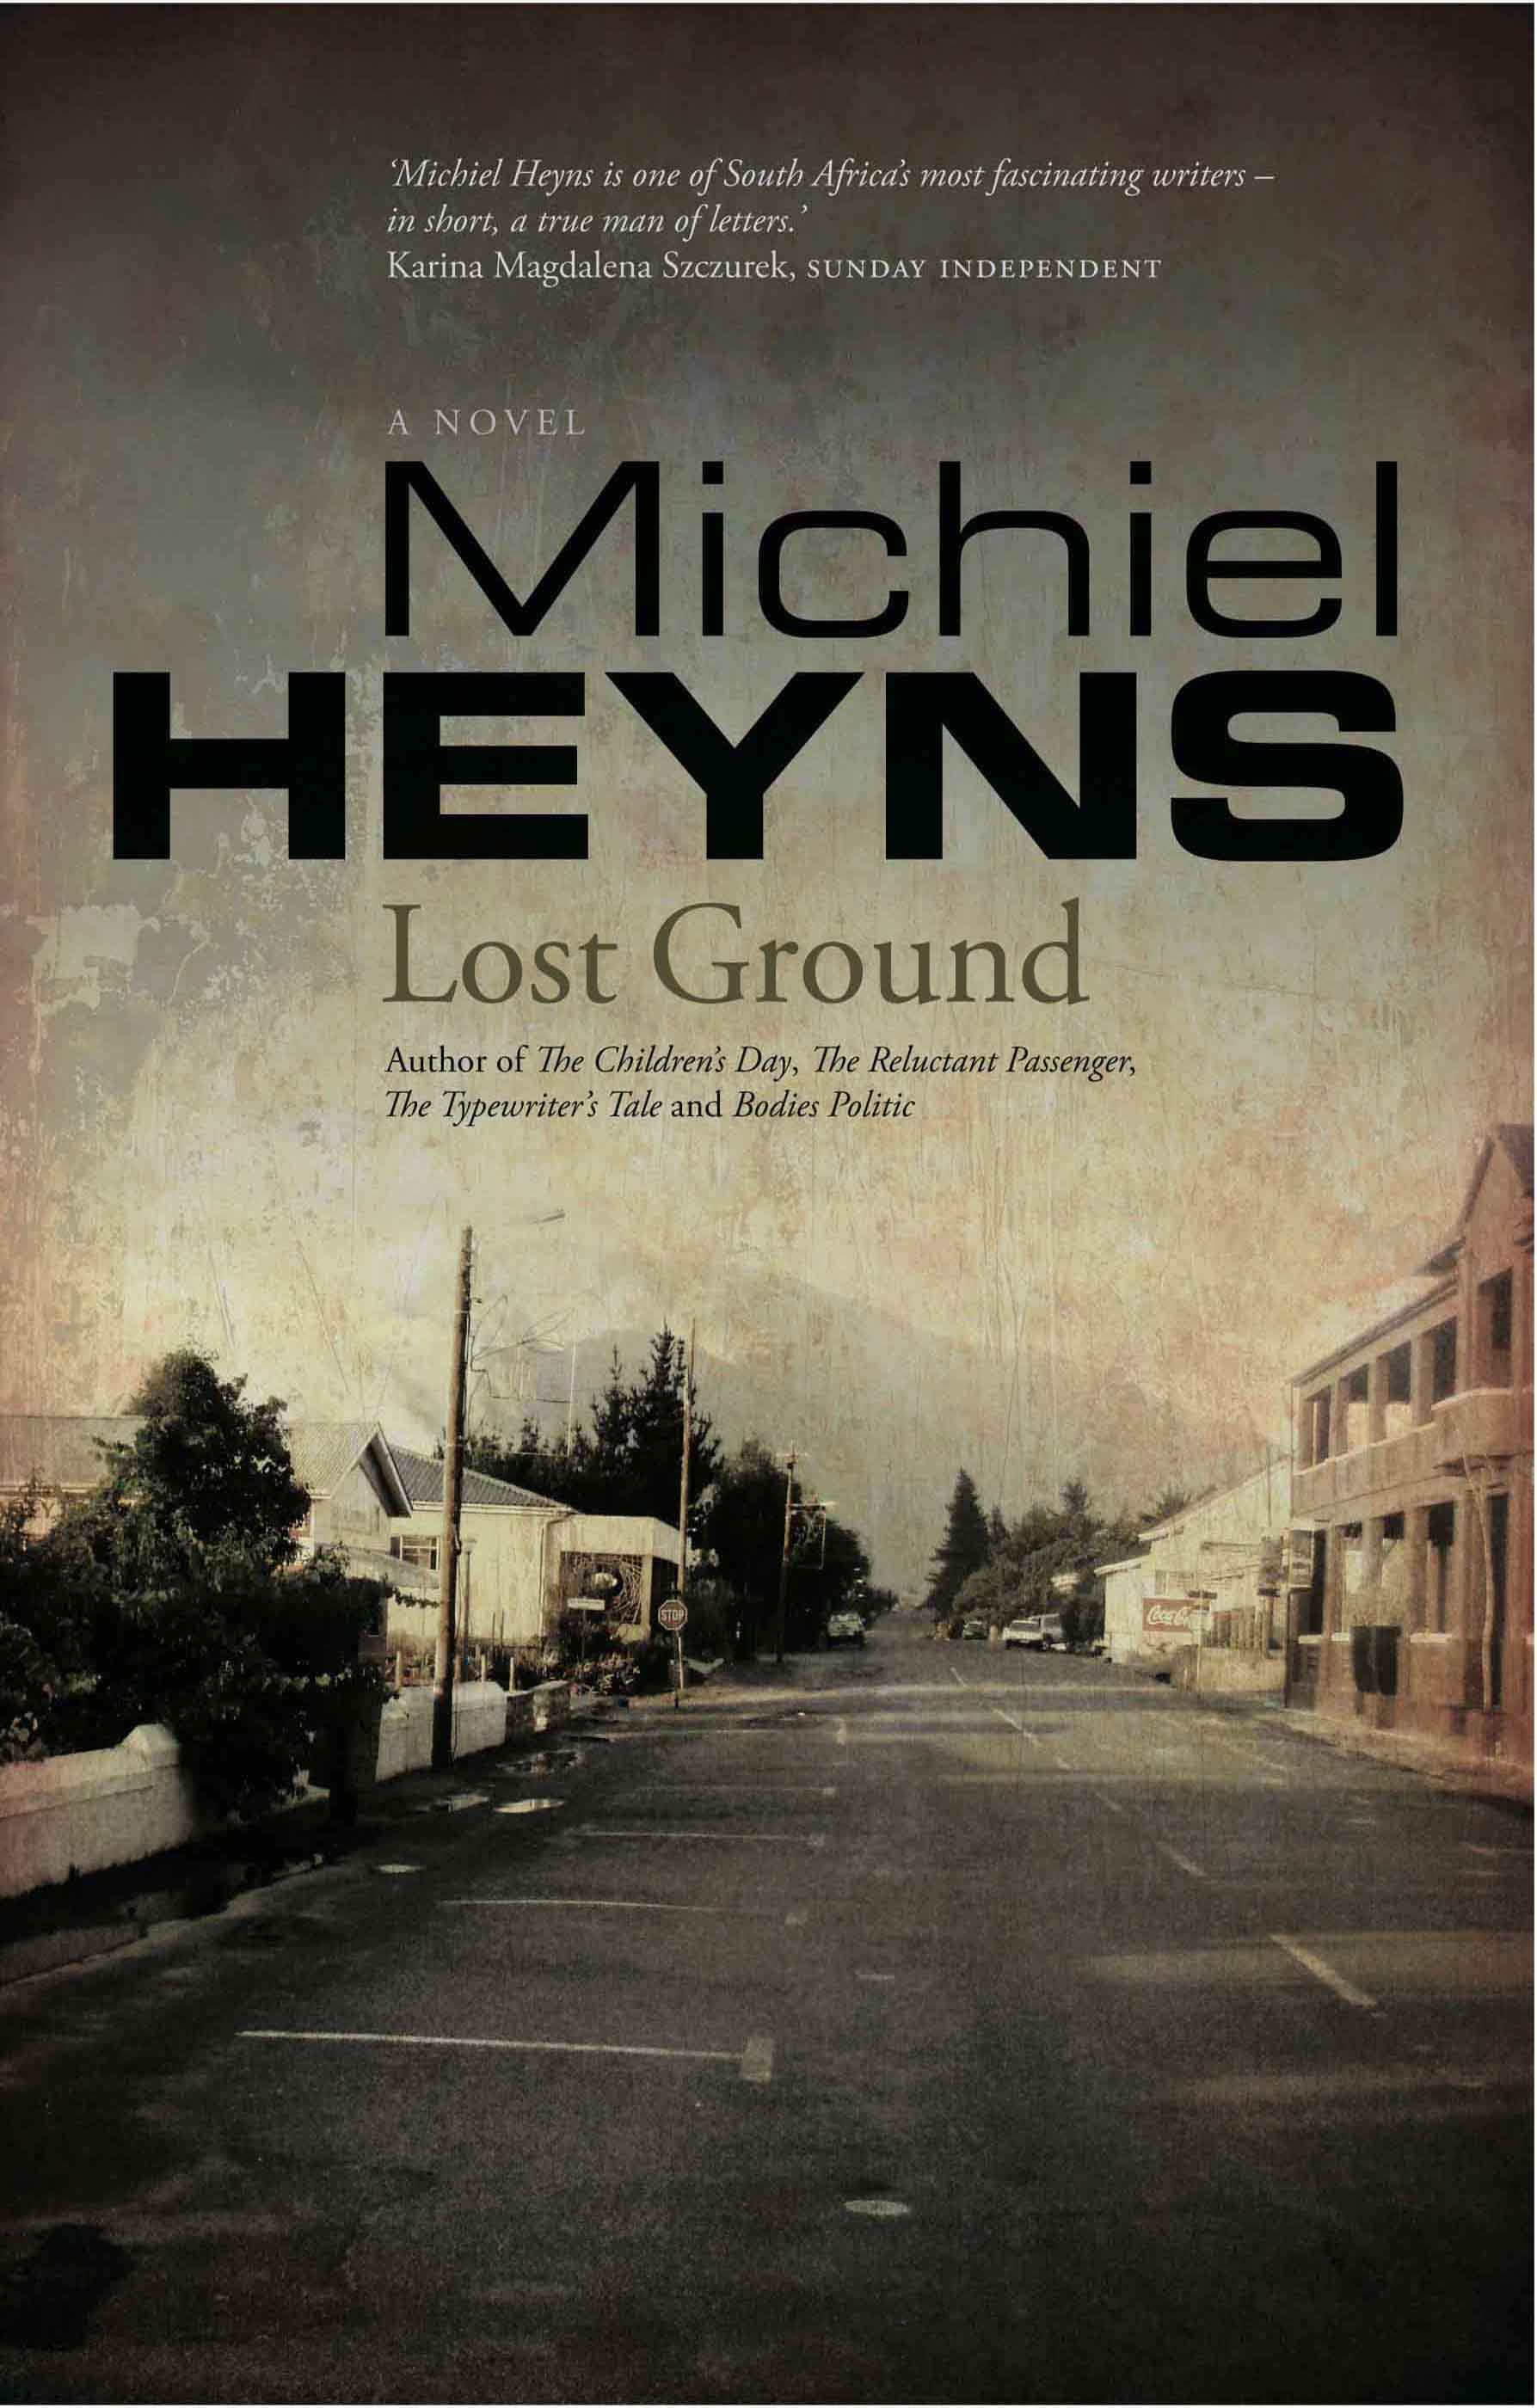 LOST GROUND  Literary fiction, 312 pages  Jonathan Ball (South Africa) - March 14, 2011  Winner of the Sunday Times Fiction Award 2012 Winner of Herman Charles Bosman Prize 2012  Peter, a freelance writer in London, returns to his South African home town for the first time in years, after the brutal murder of his beautiful cousin, in search of a career-defining story.